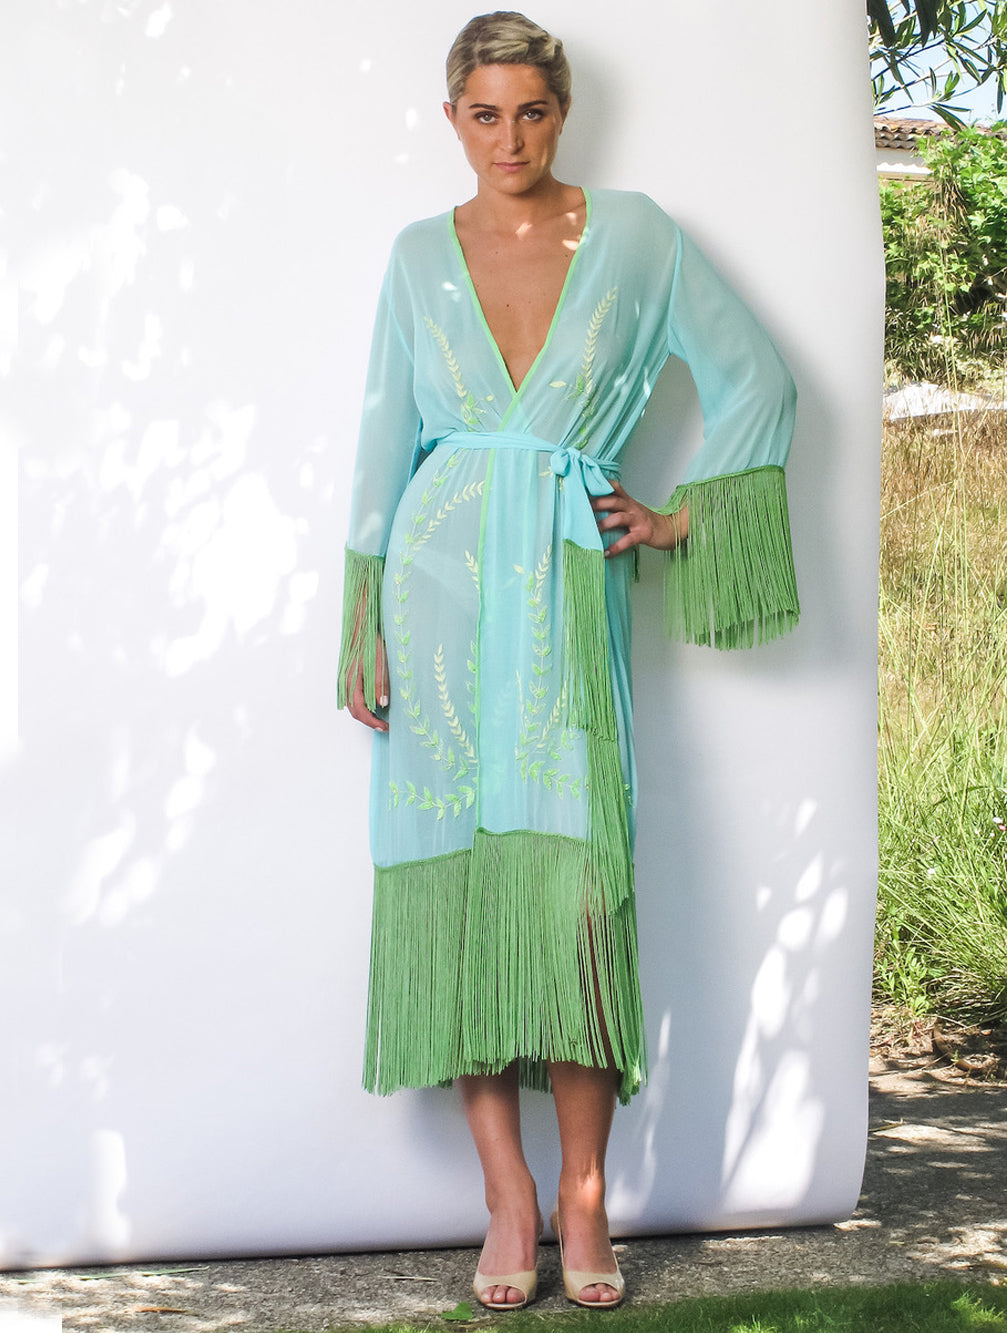 KAIA-LONDON-arjun-athena-robe-silk-resortwear-beachwear-tassel-embroidered-luxury-long kimono-Tashia